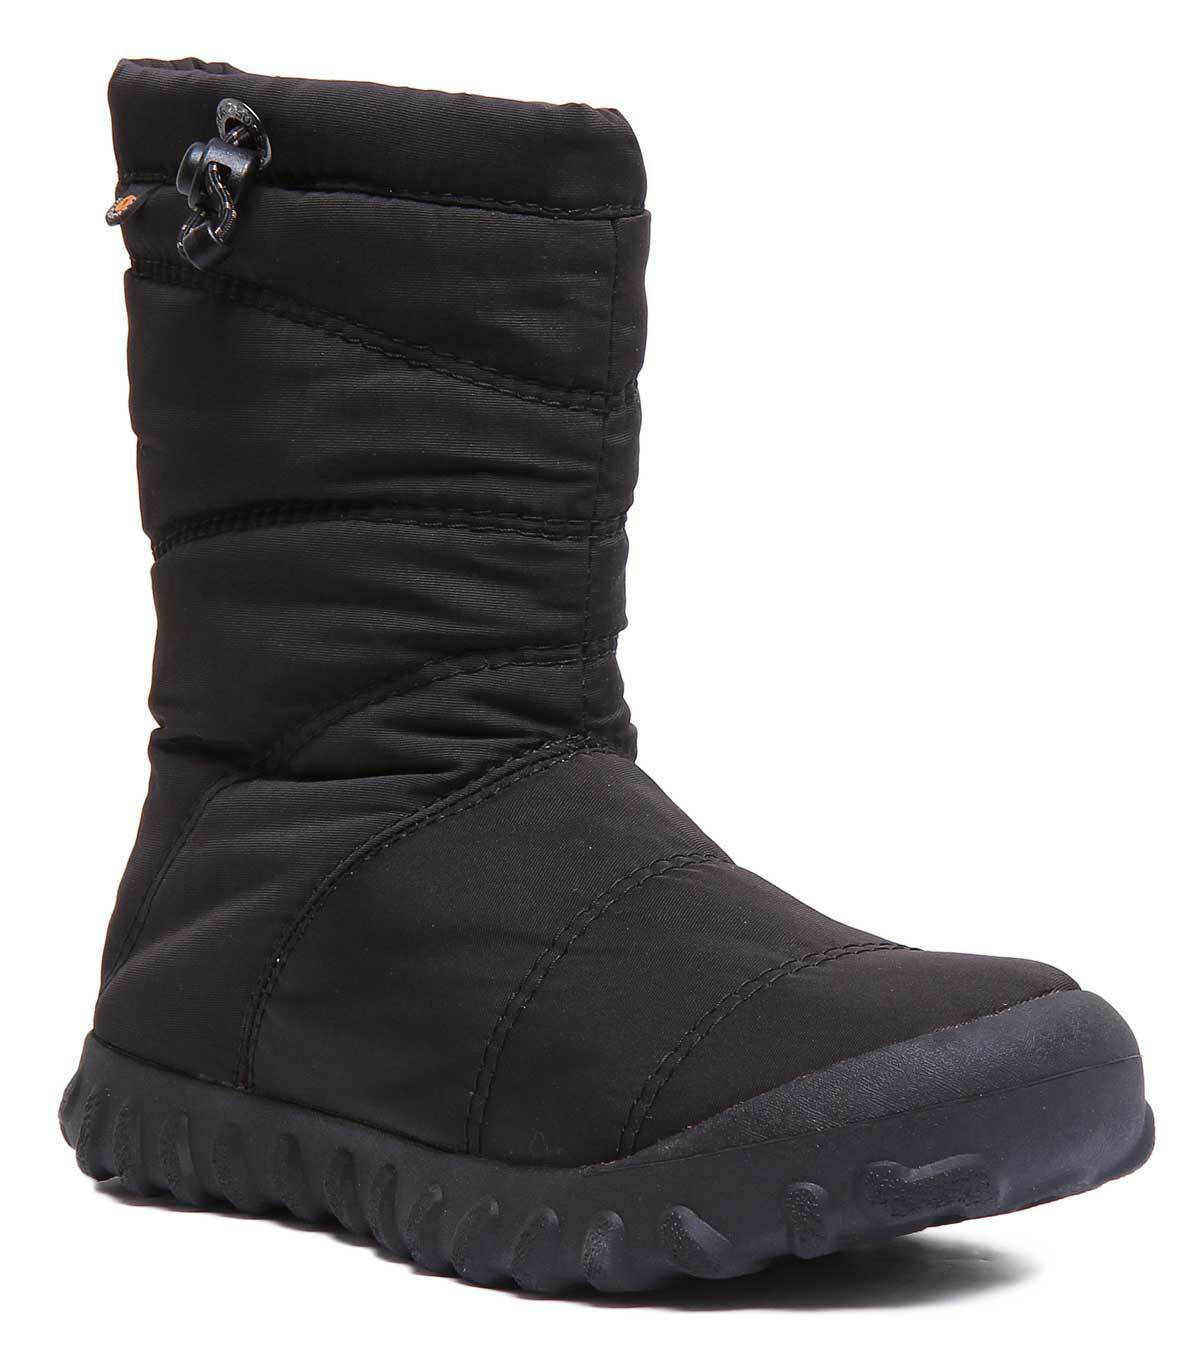 Bogs B Puffy Mid Womens Black Textile Boots Size UK 3 - 8